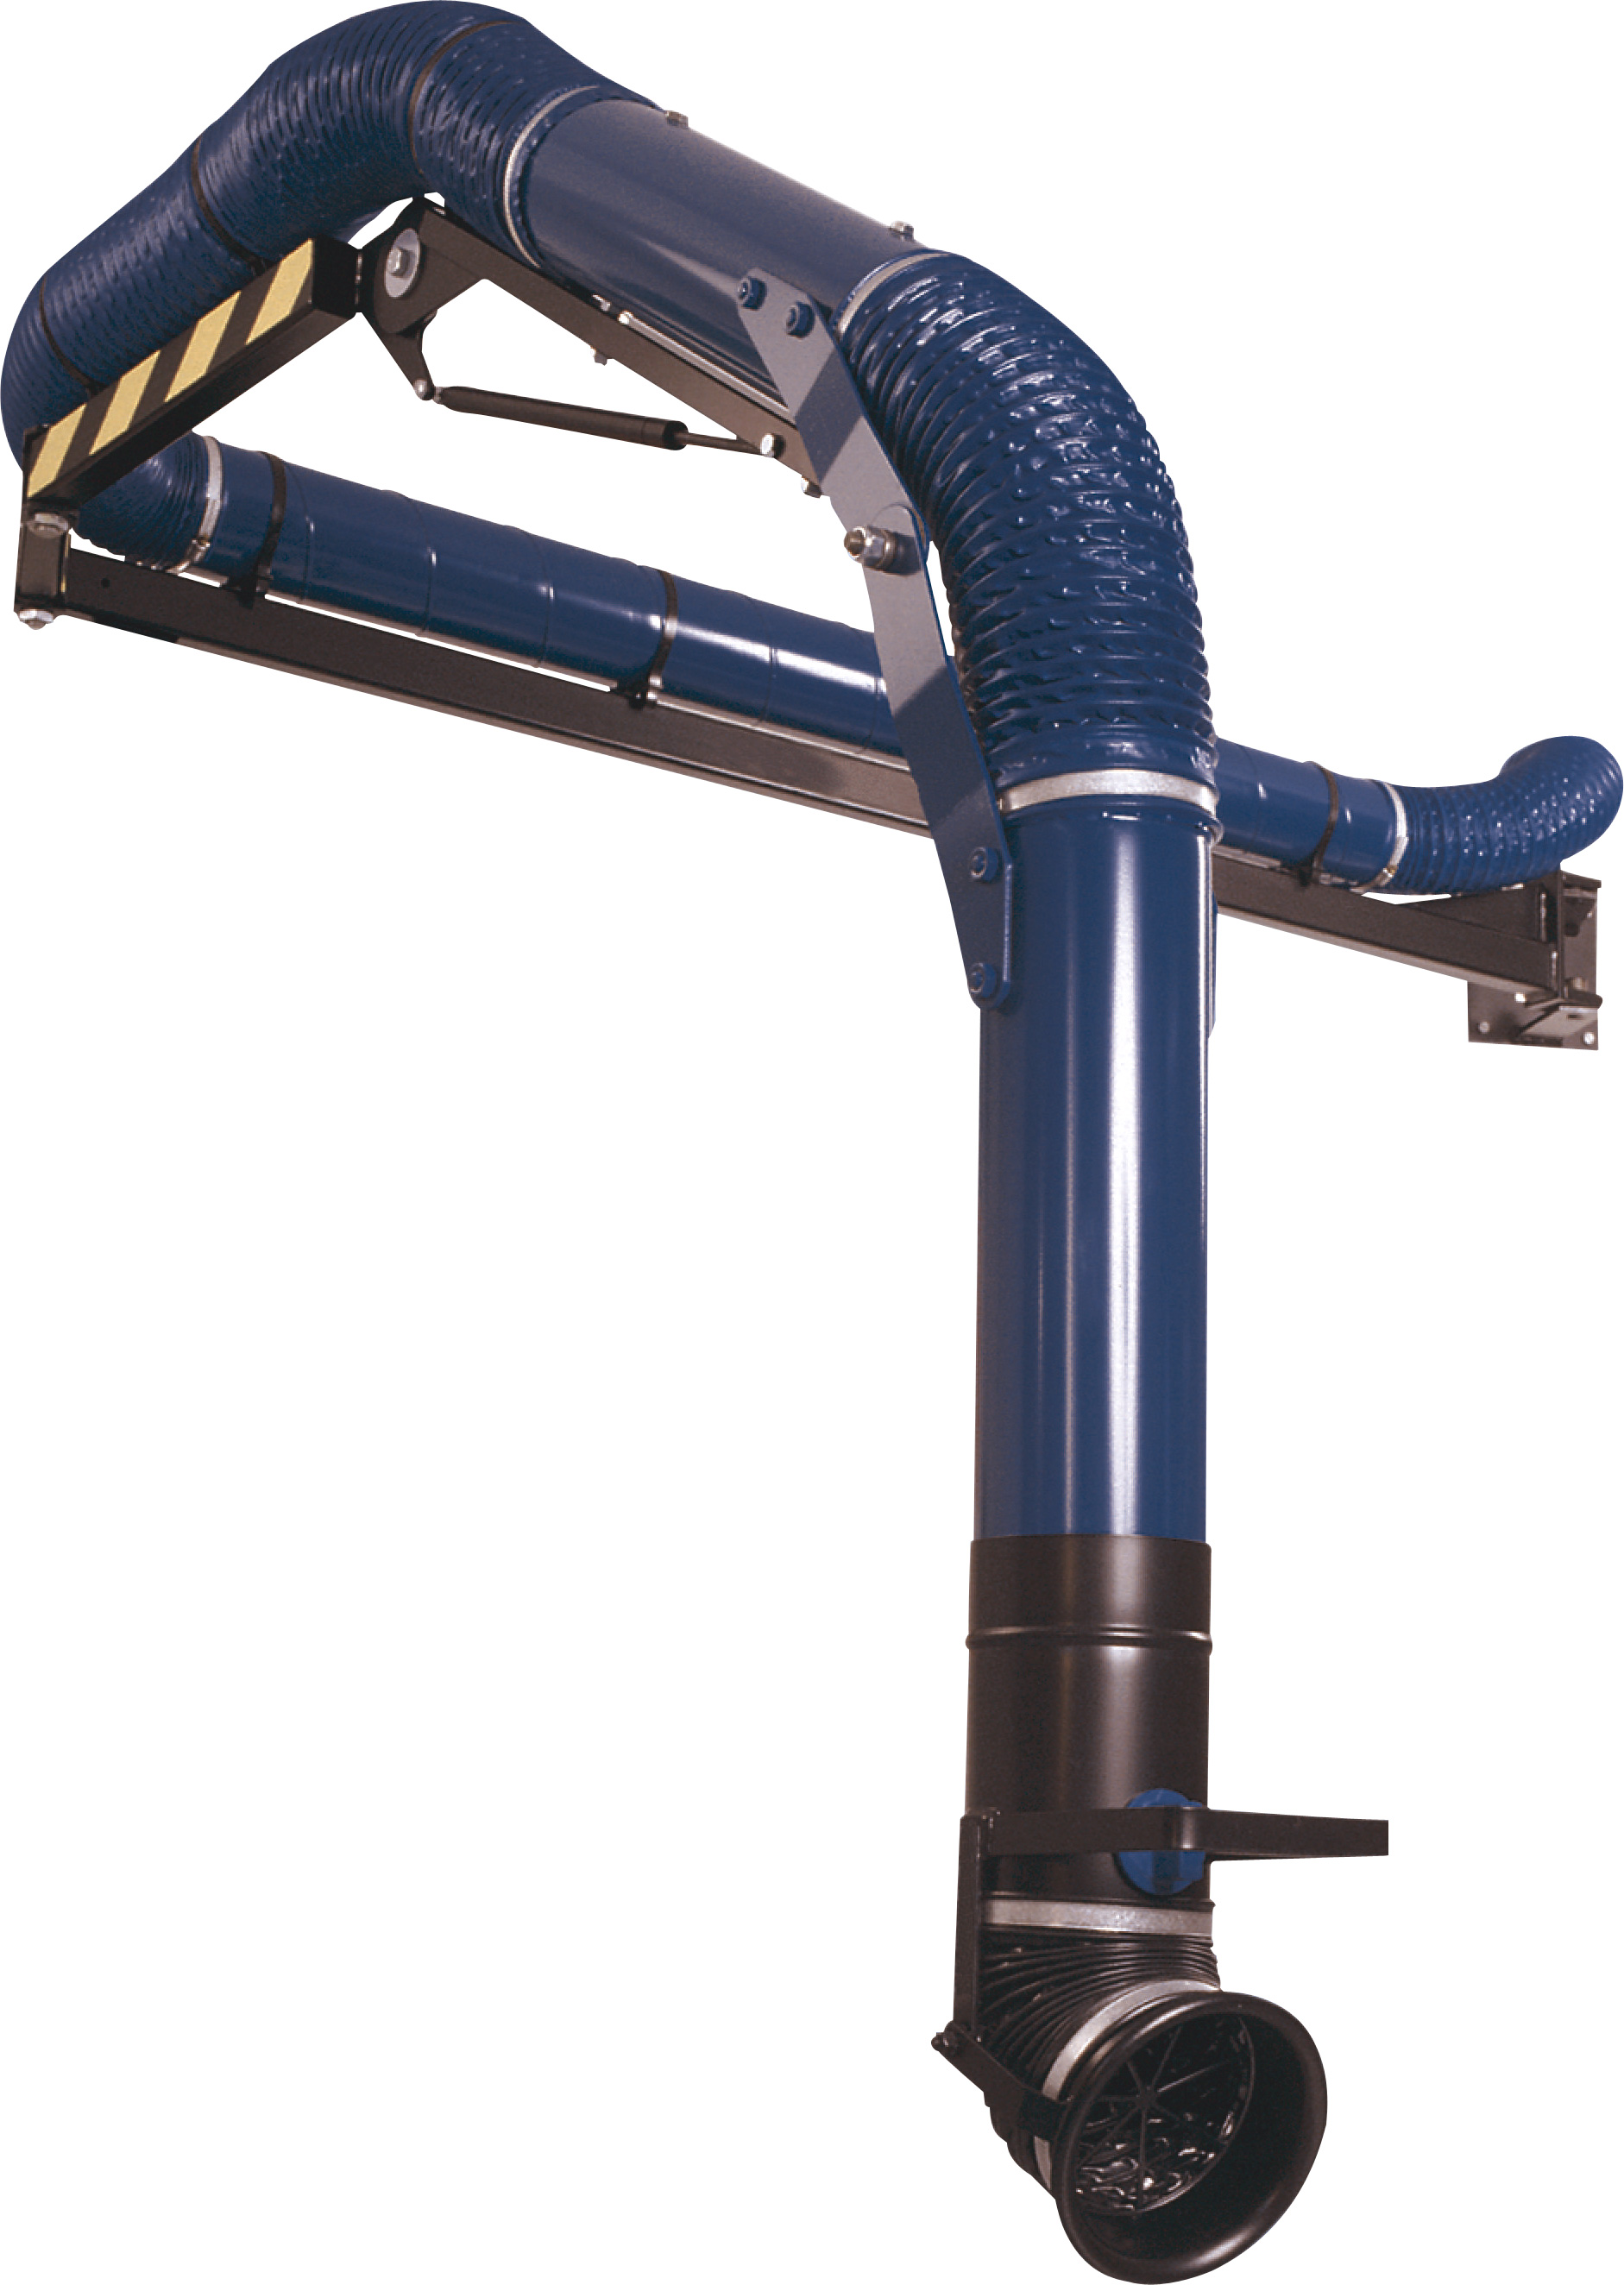 Extraction Arms | Total Air Energy Solutions